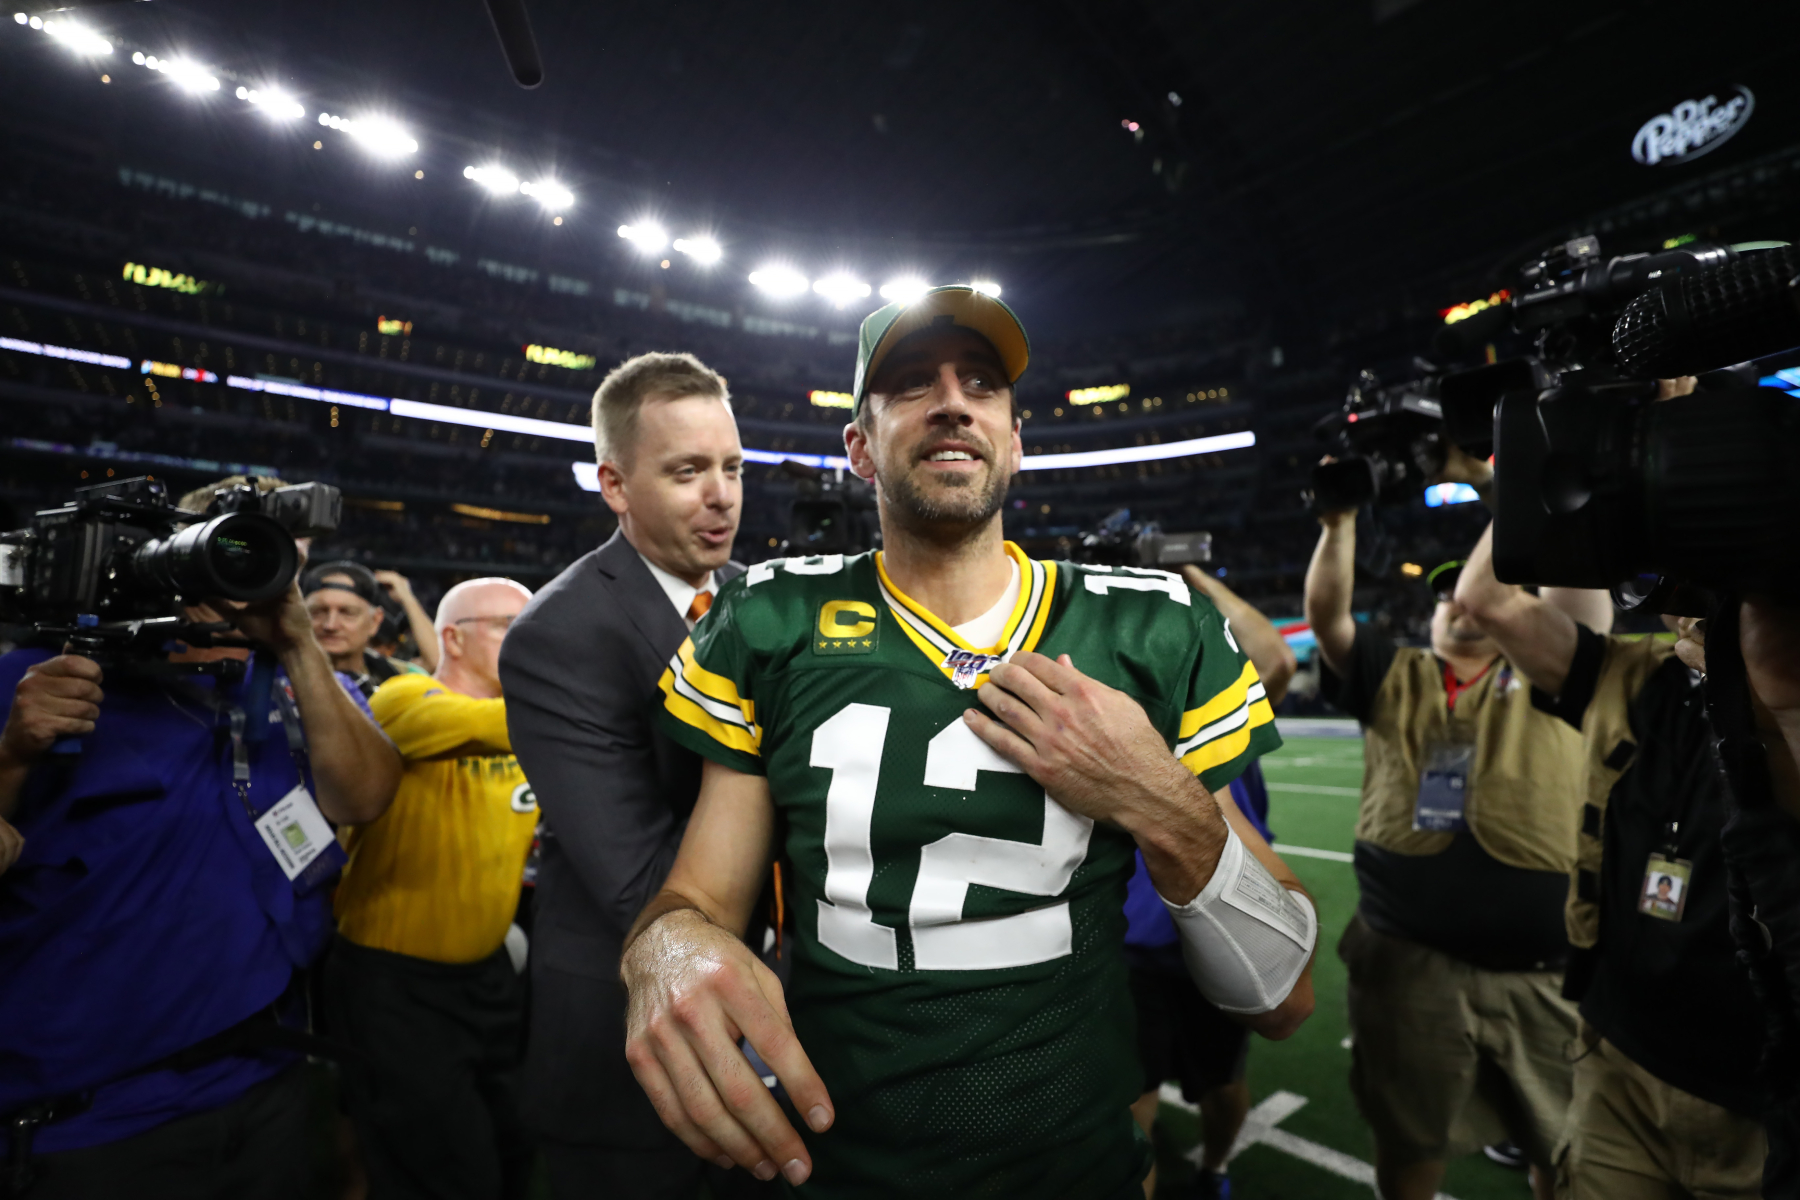 While being an NFL star for the Packers, Aaron Rodgers has had multiple high-profile relationships and even got engaged to someone else.